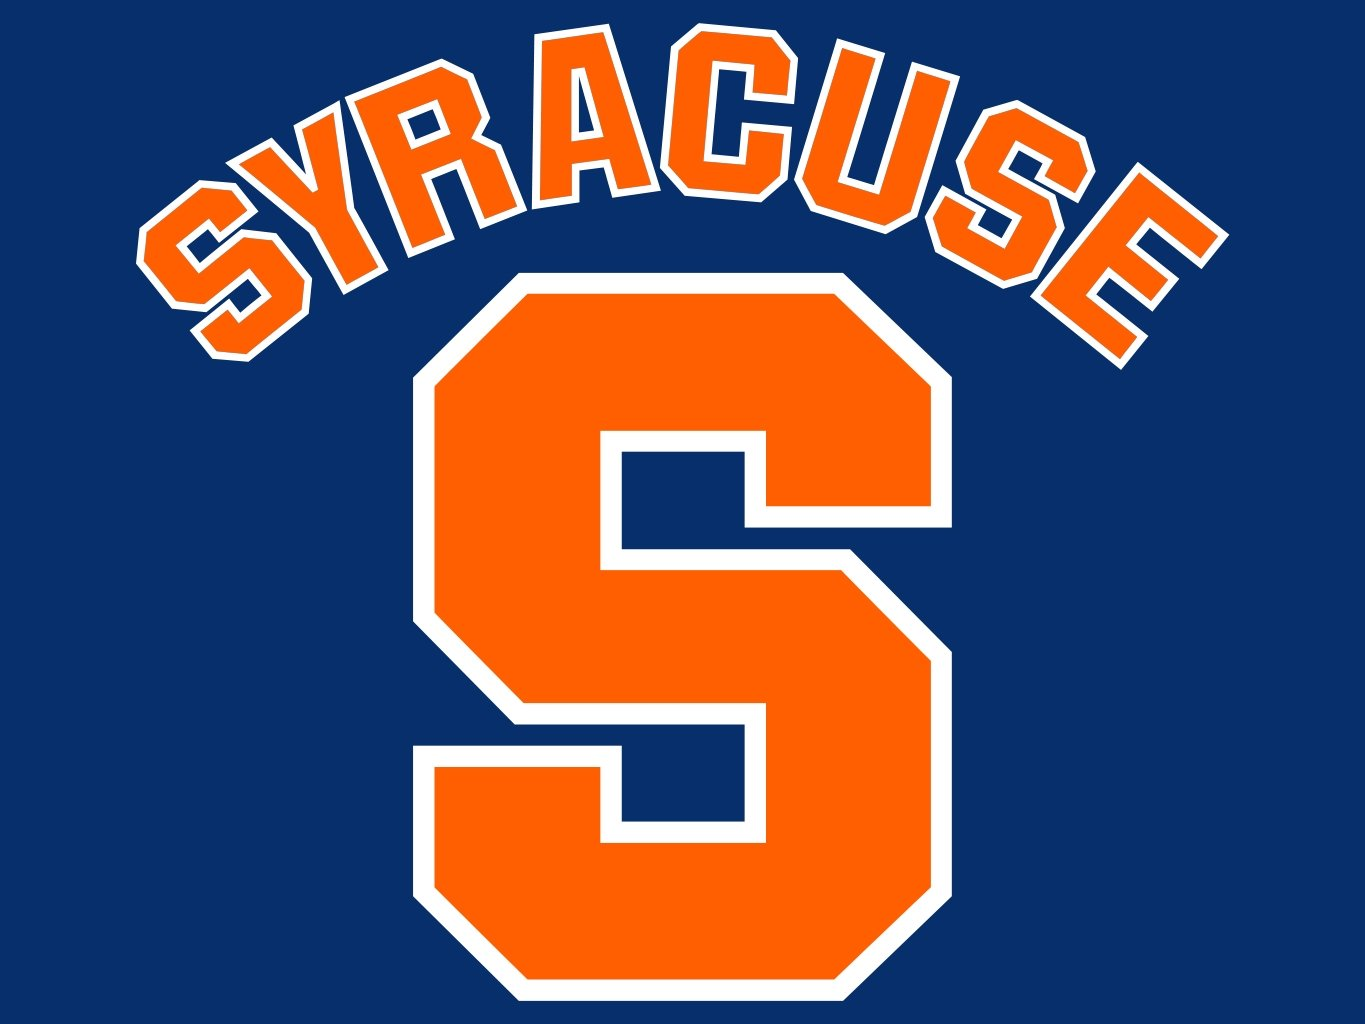 syracuse orange syracuse university desktop wallpaper collection 1365x1024